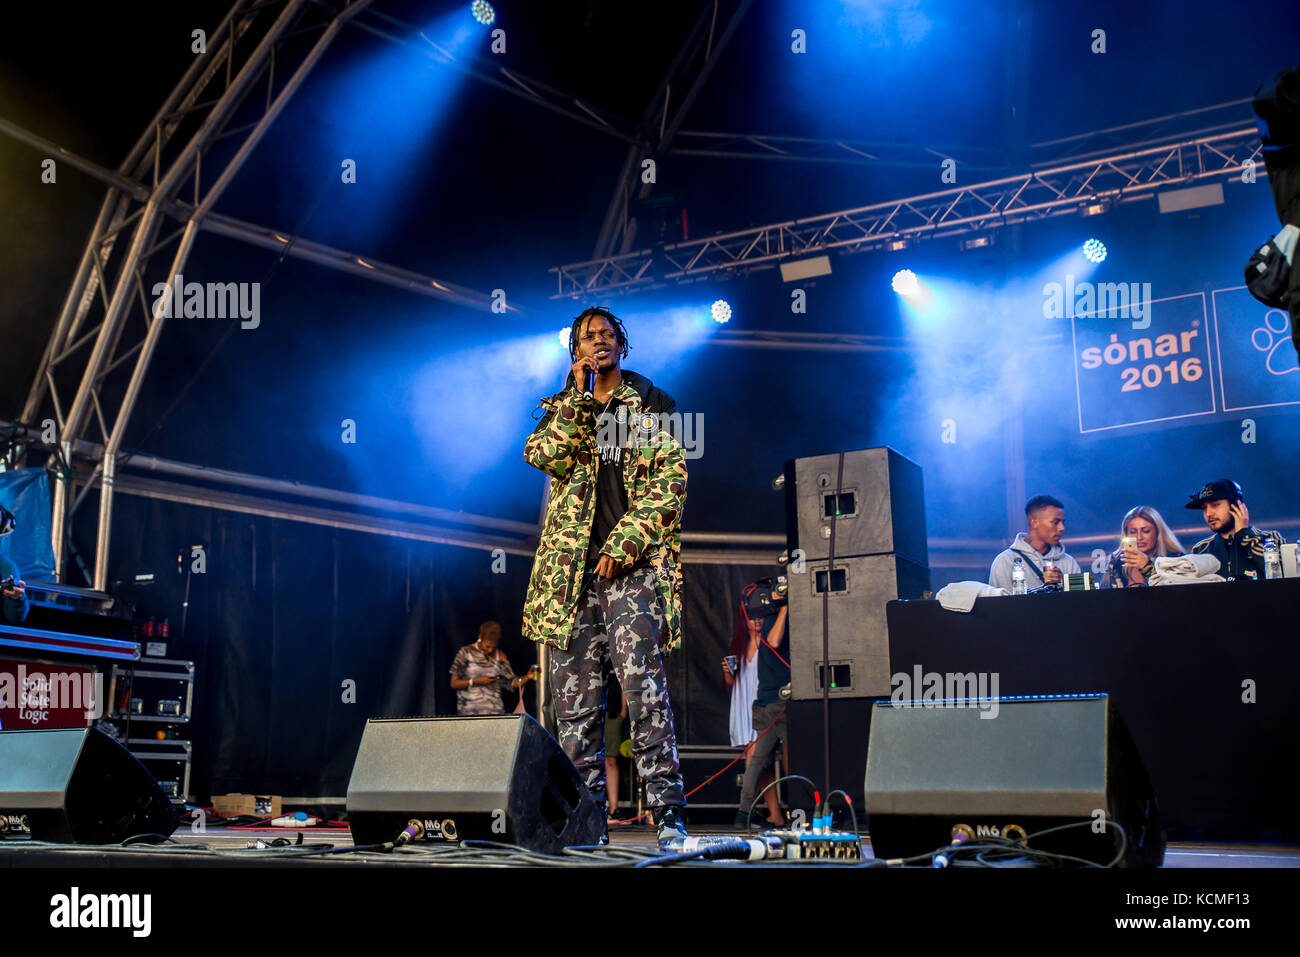 BARCELONA - JUN 18: Section Boyz (rap band) perform in concert at Sonar Festival on June 18, 2016 in Barcelona, Stock Photo